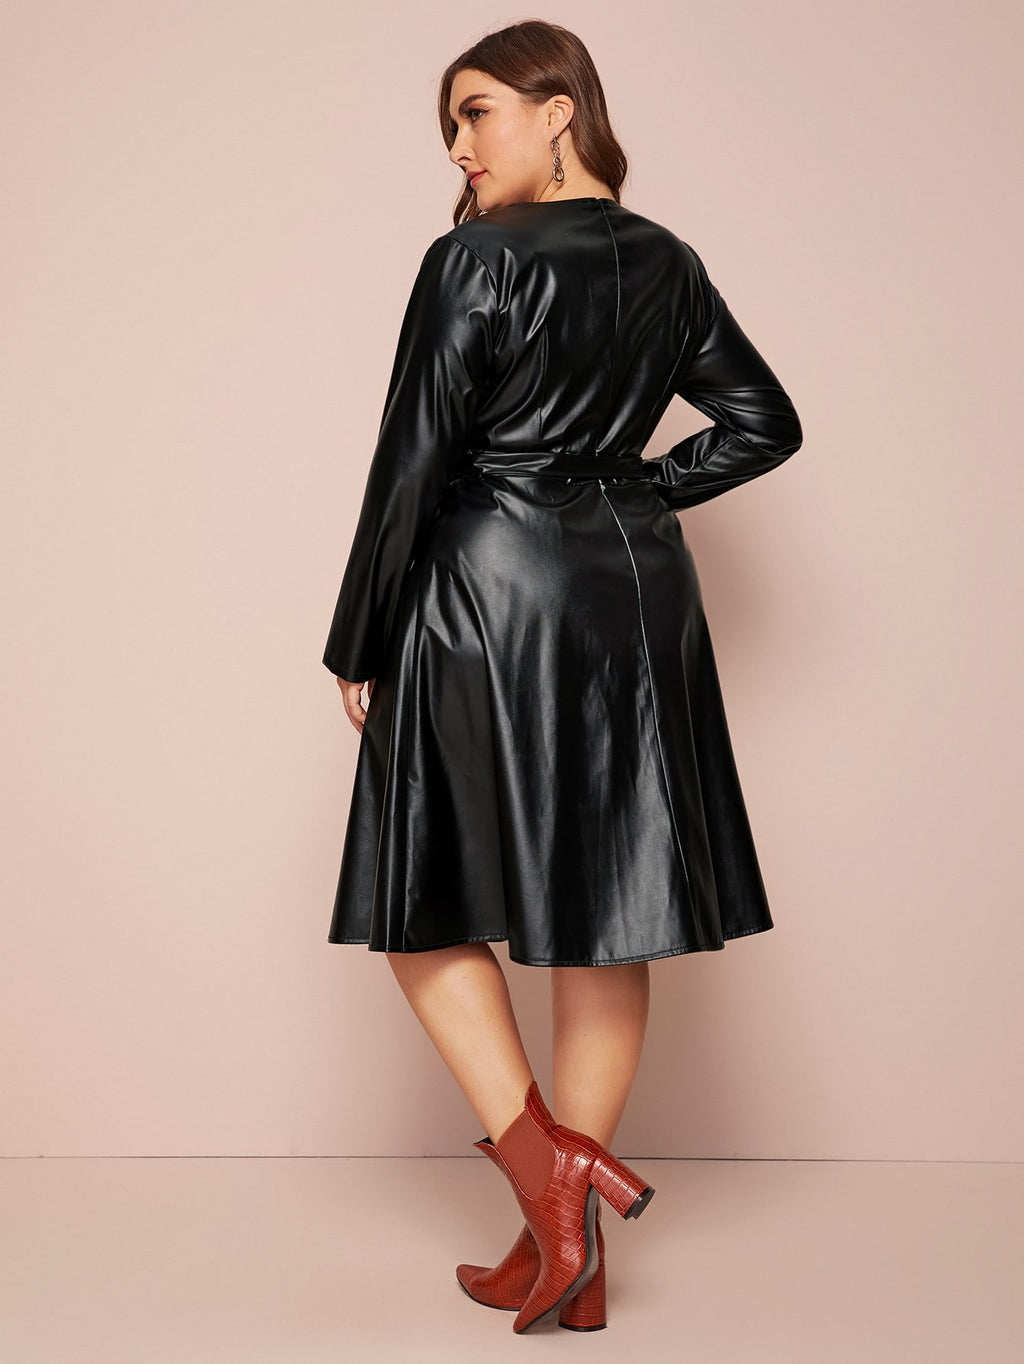 Plus Size Chic Self Tie PU Leather A-line Dress